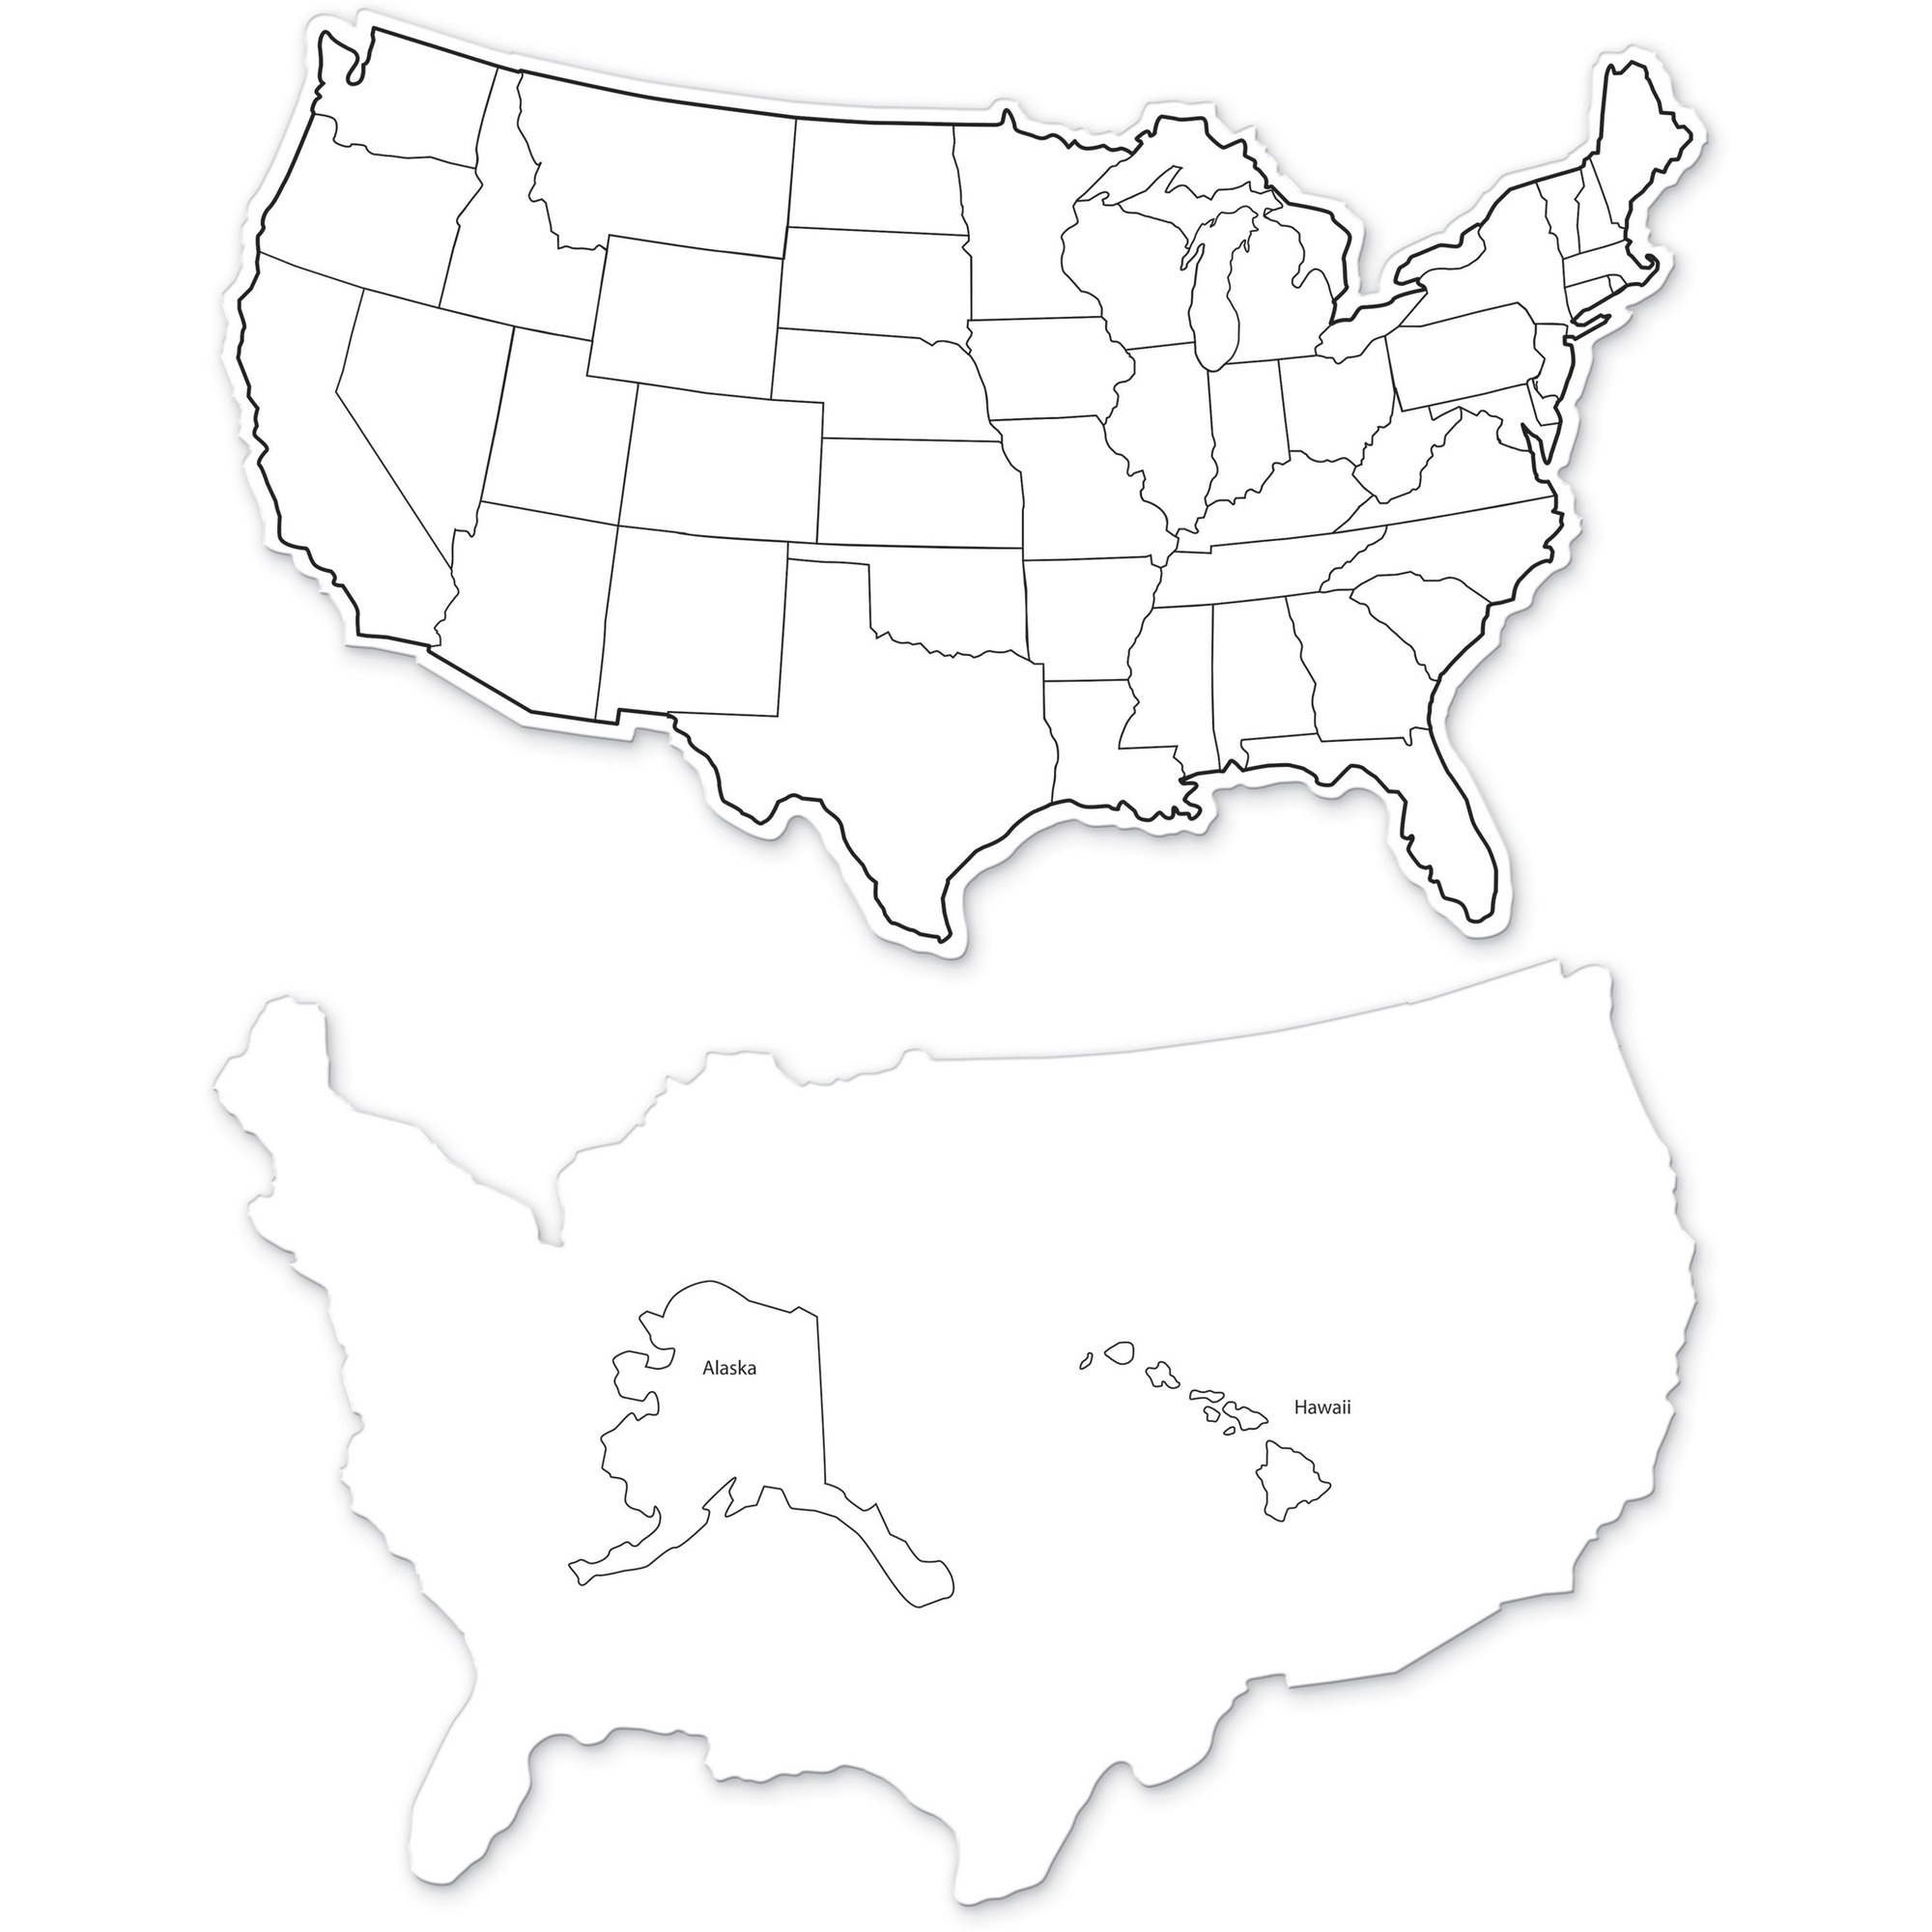 Pacon Corporation Creativity Street Large Usa Maps Whiteboard - 12 (1 Ft)  Width X 8 (0.7 Ft) Height - White Surface - Rectangle - 10 / Pack